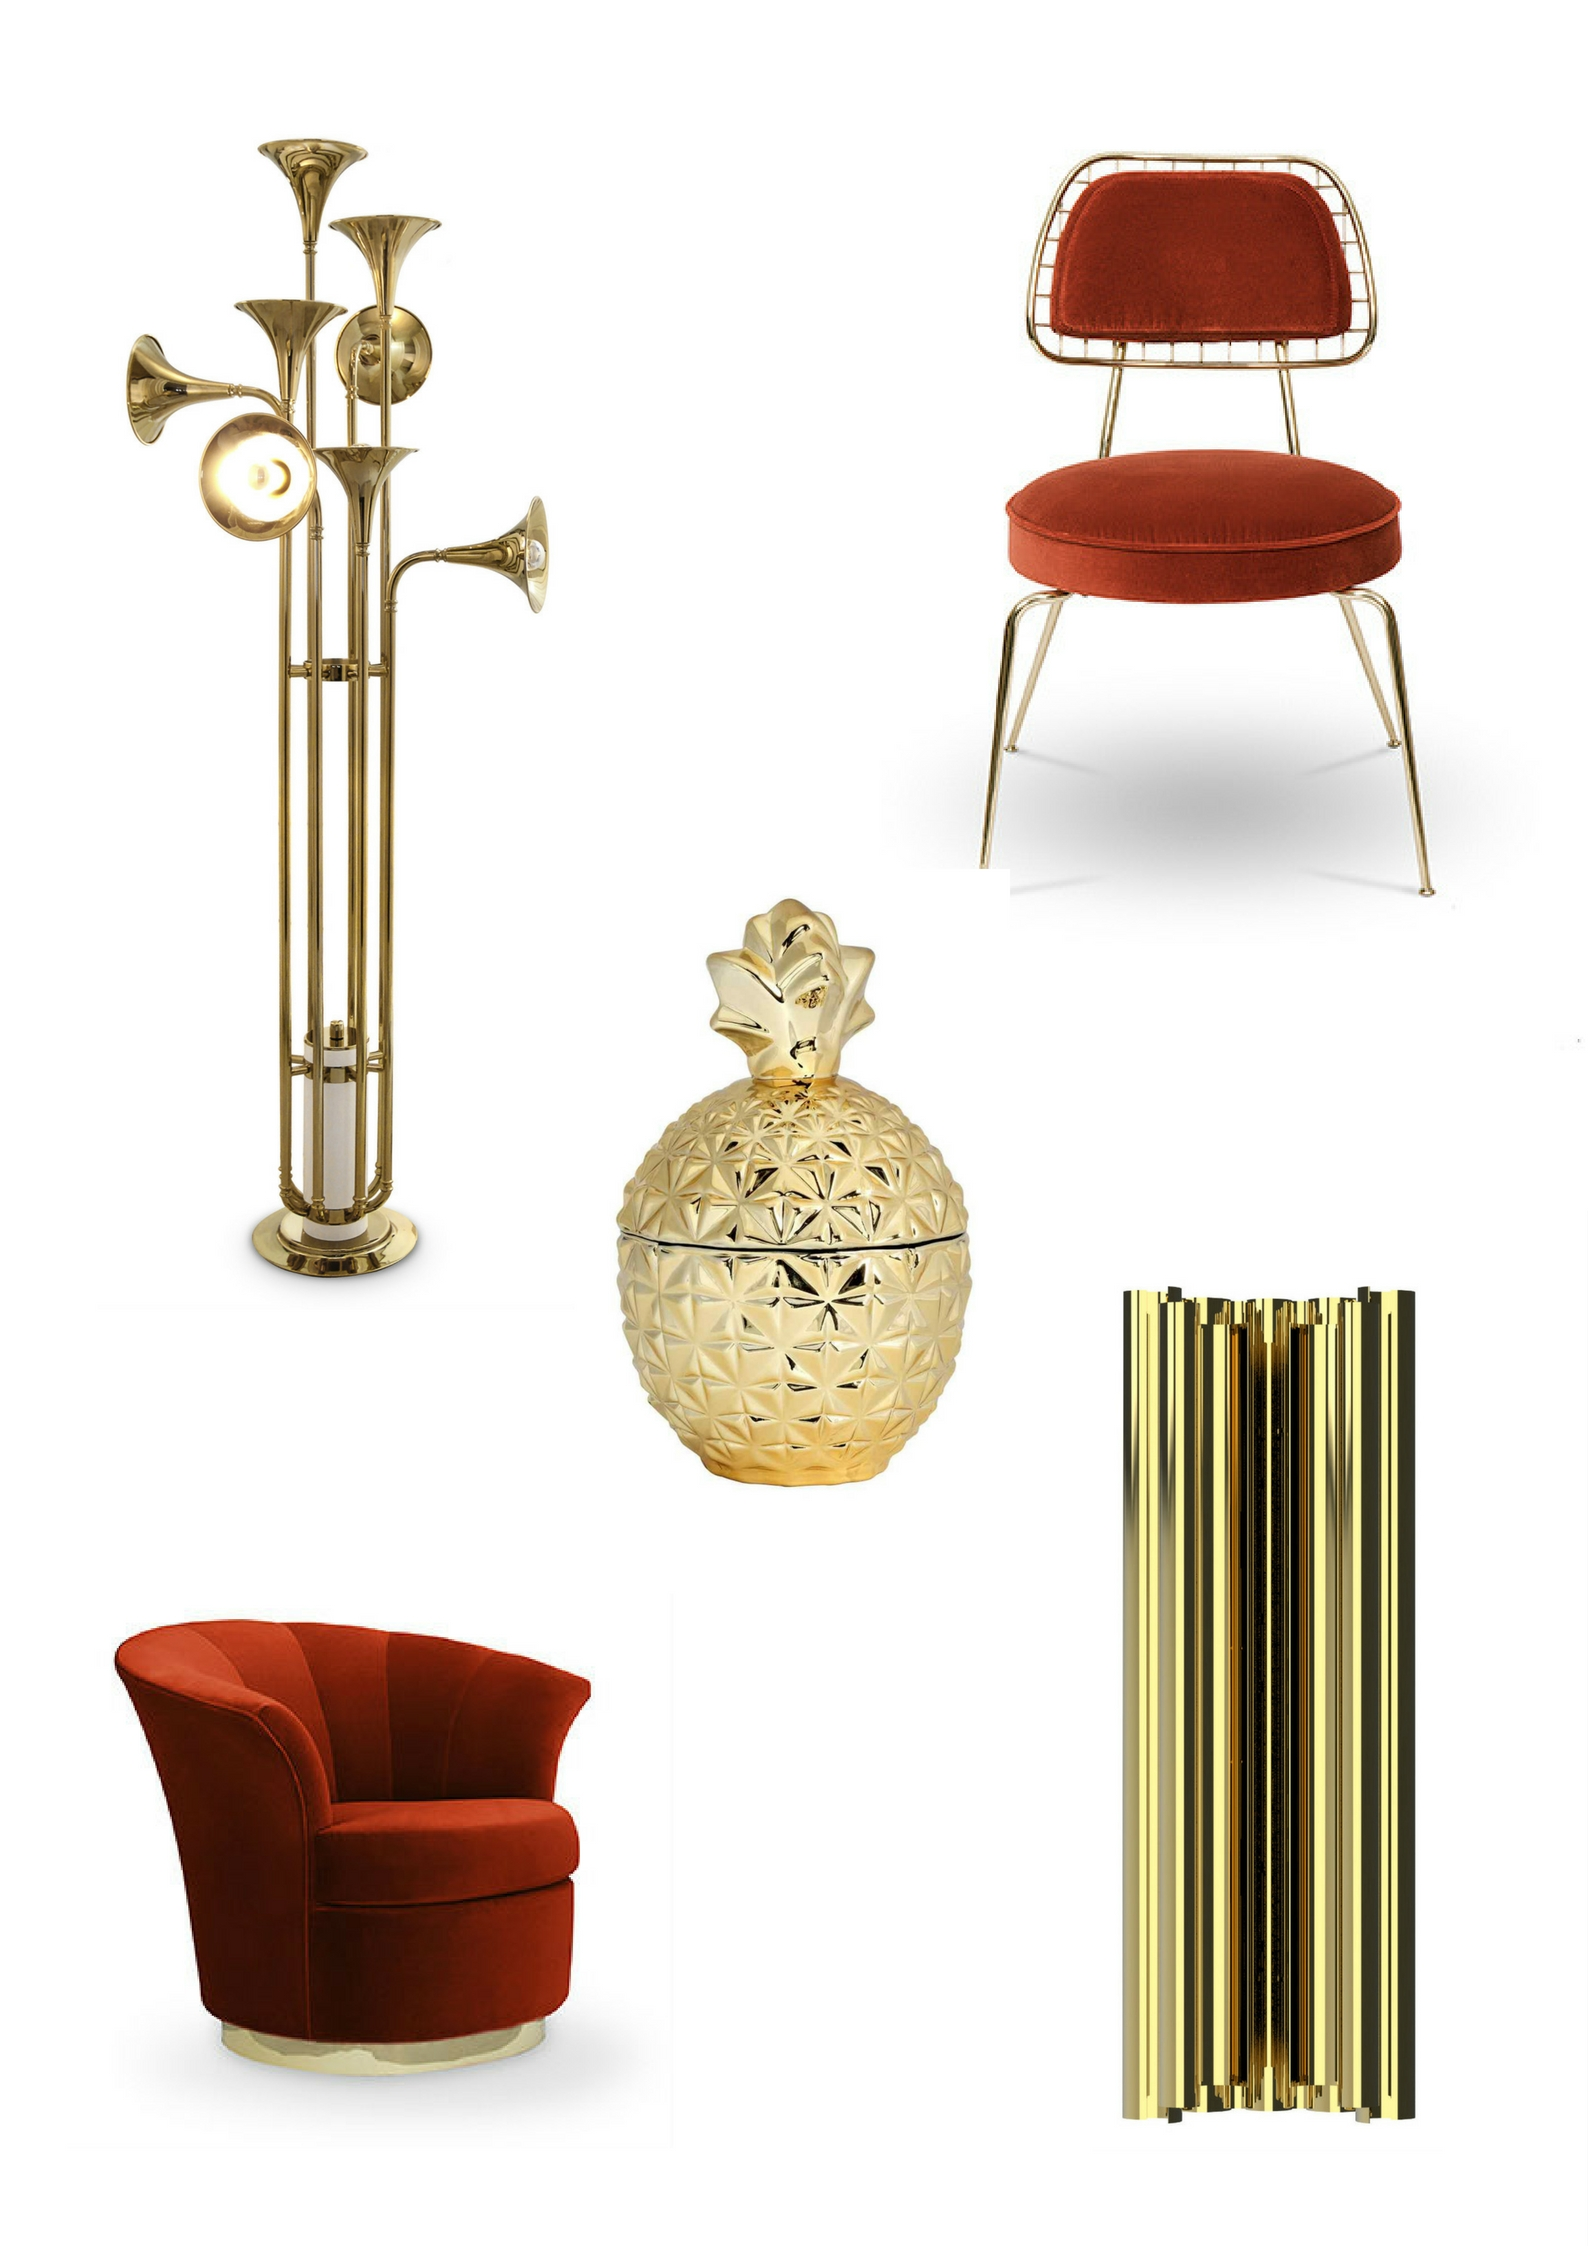 Mood Board Brighten Up Your Space with Flame 1 mood board Mood Board: Brighten Up Your Space with Flame Mood Board Flame 2